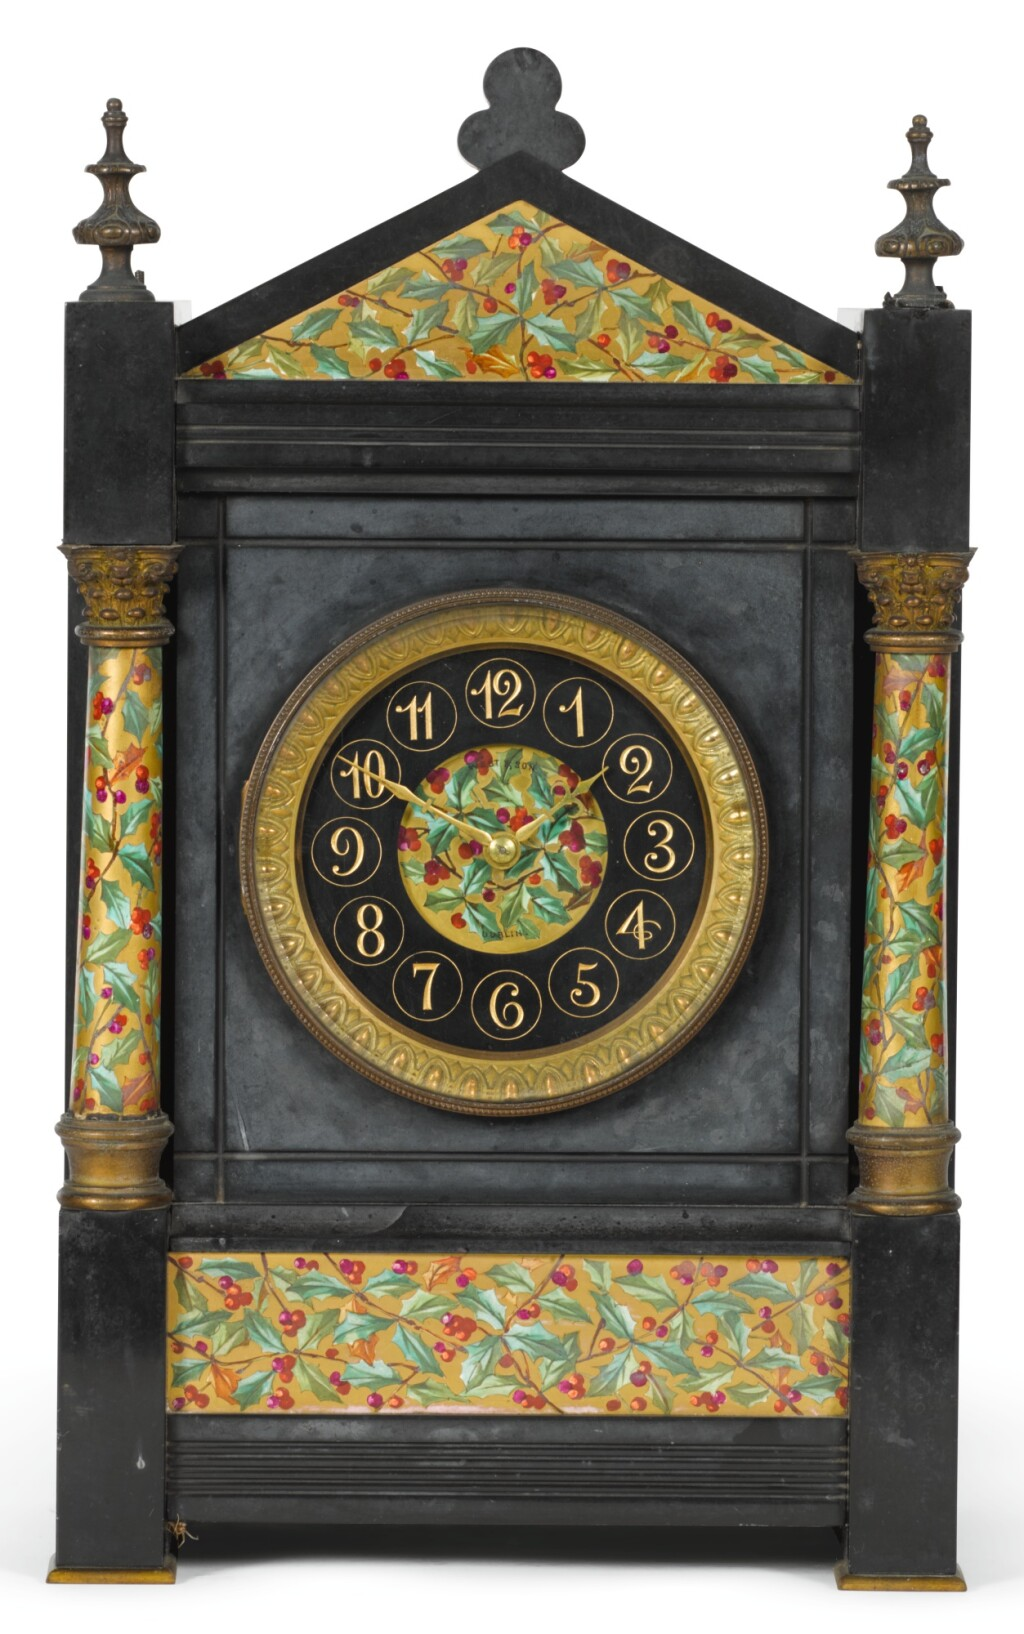 A BLACK MARBLE MANTEL CLOCK WITH RARE KEYLESS WINDING, FRENCH, CIRCA 1880